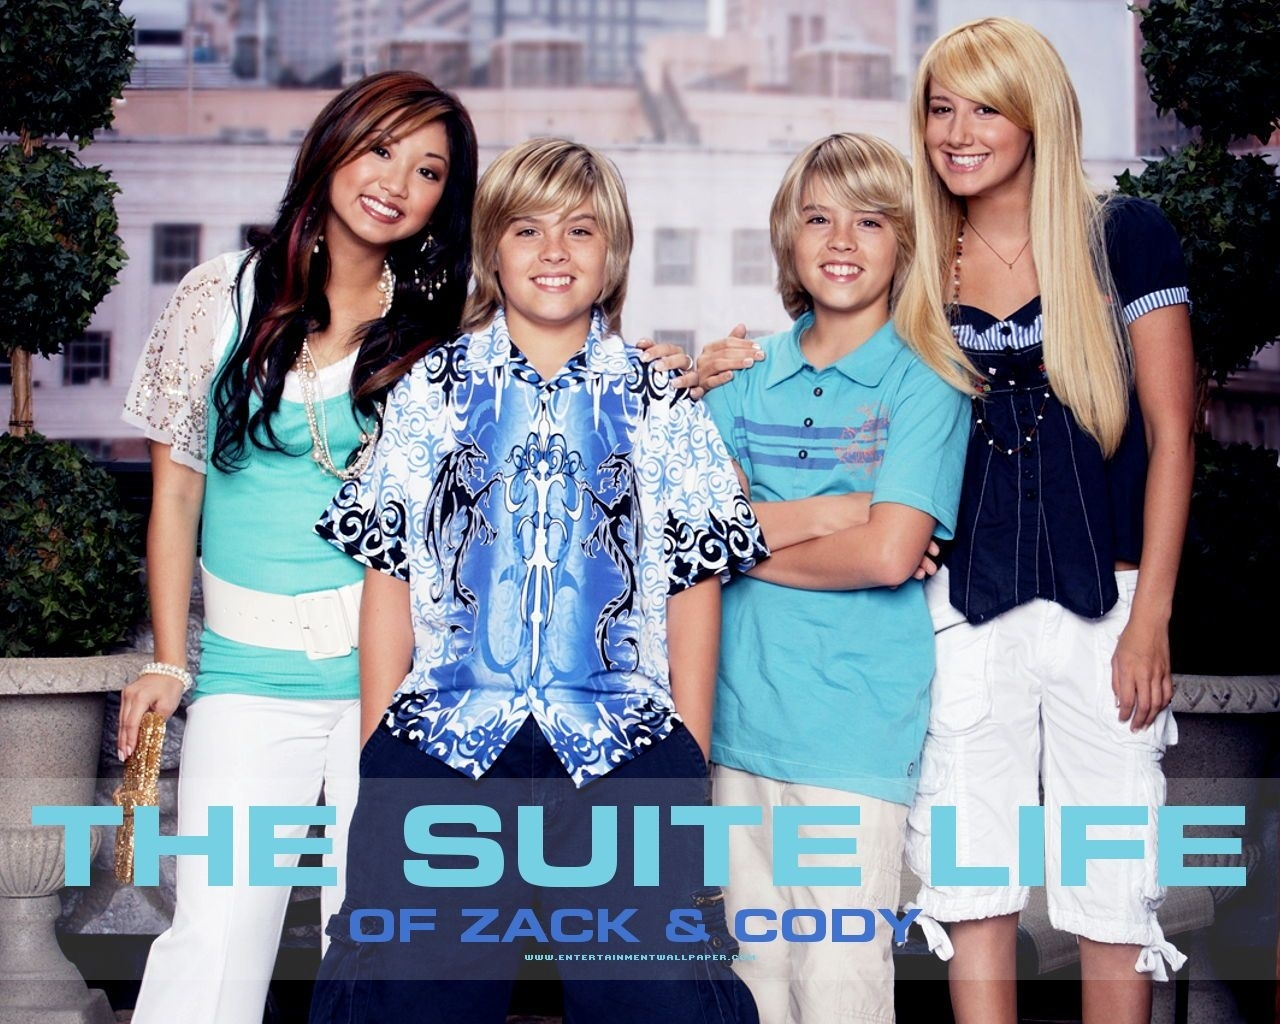 suite-the-suite-life-of-zack-and-cody-4182059-1280-1024.jpg